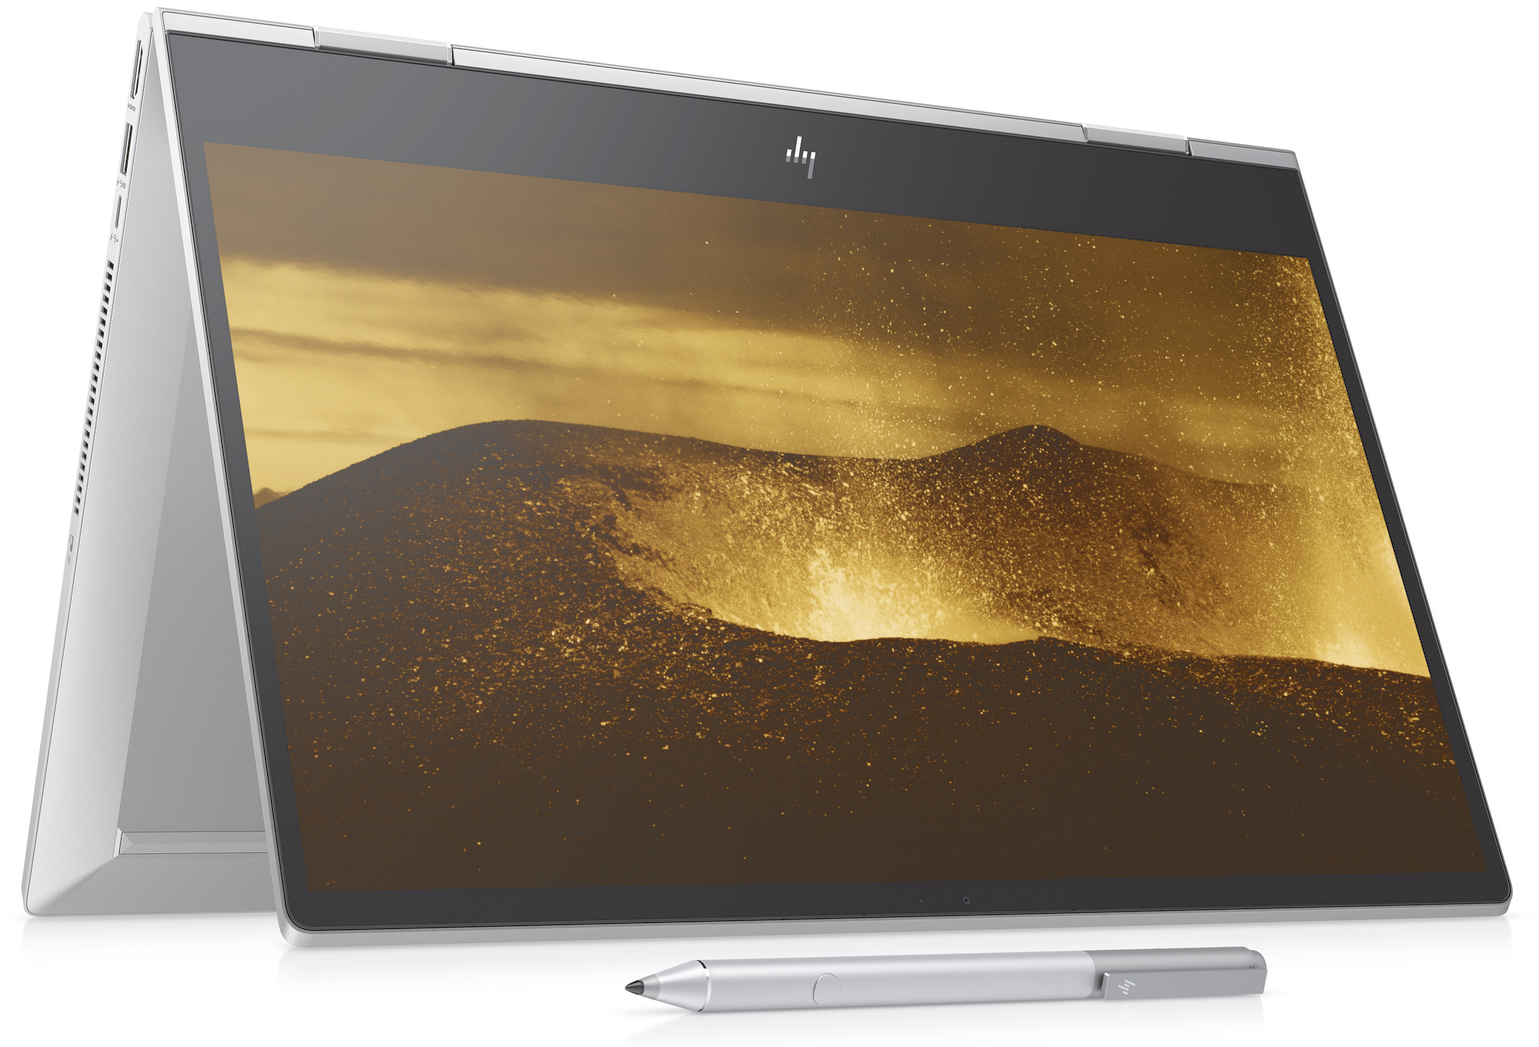 HP Reveals Envy x360 15 Laptops with AMD's Latest Ryzen APUs